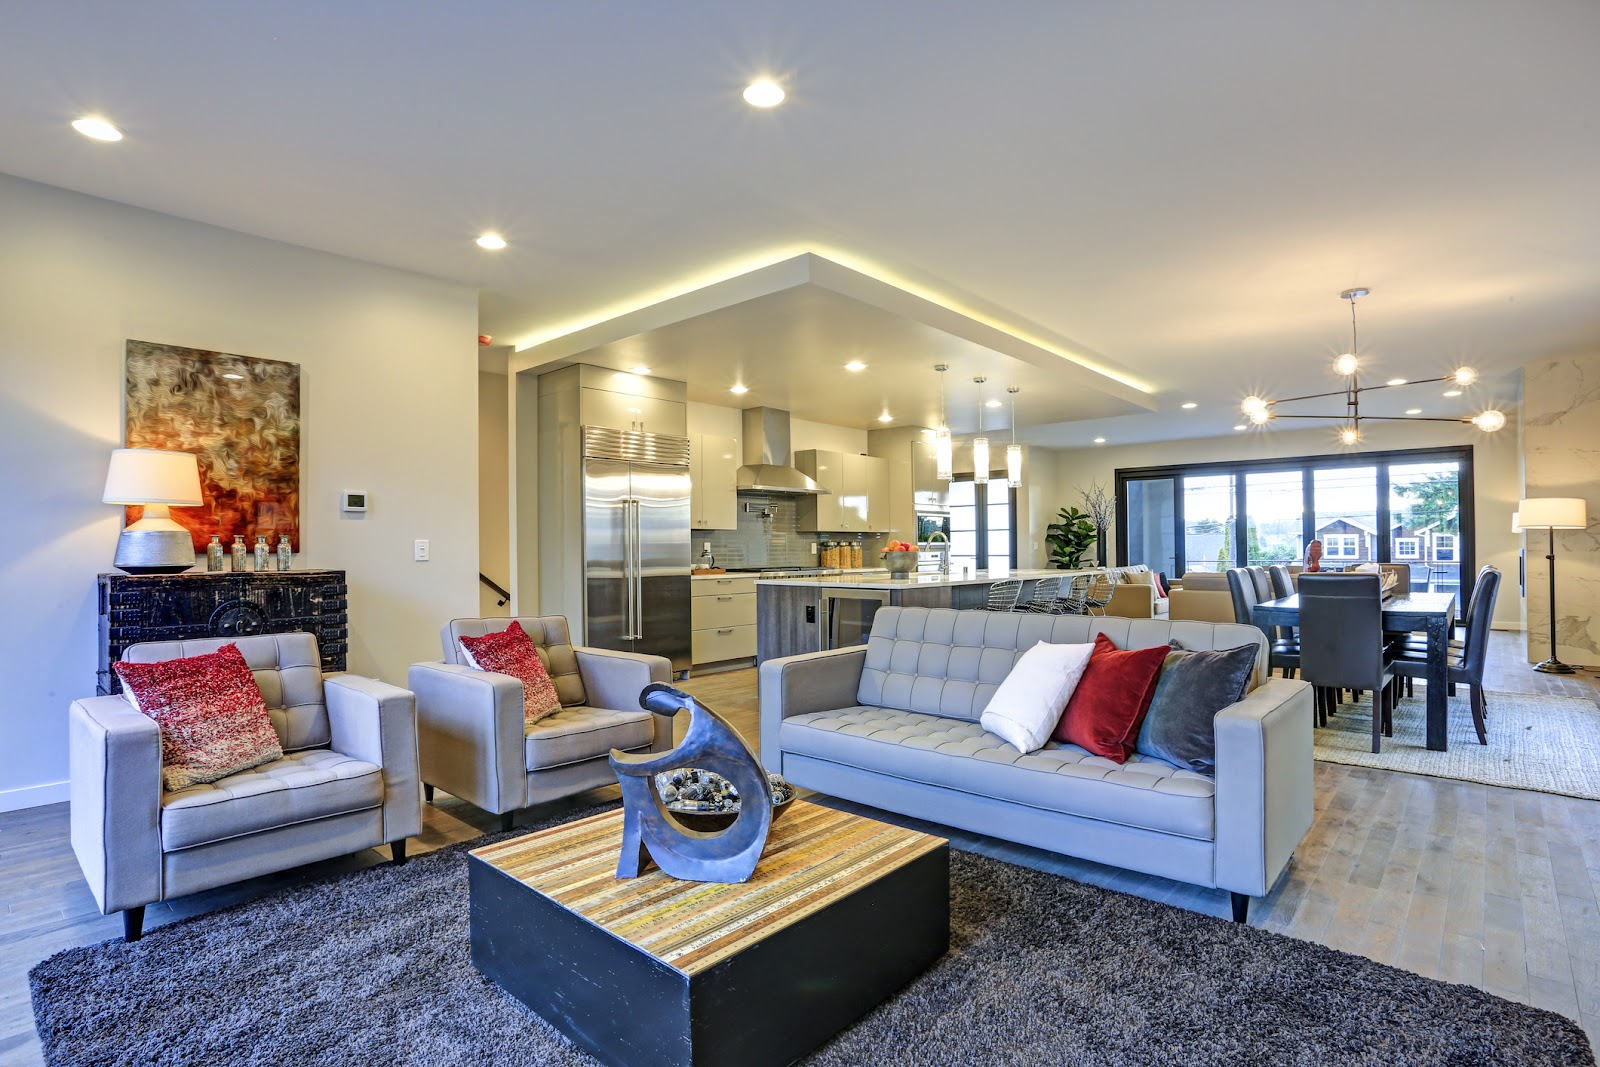 staged house with nice interior